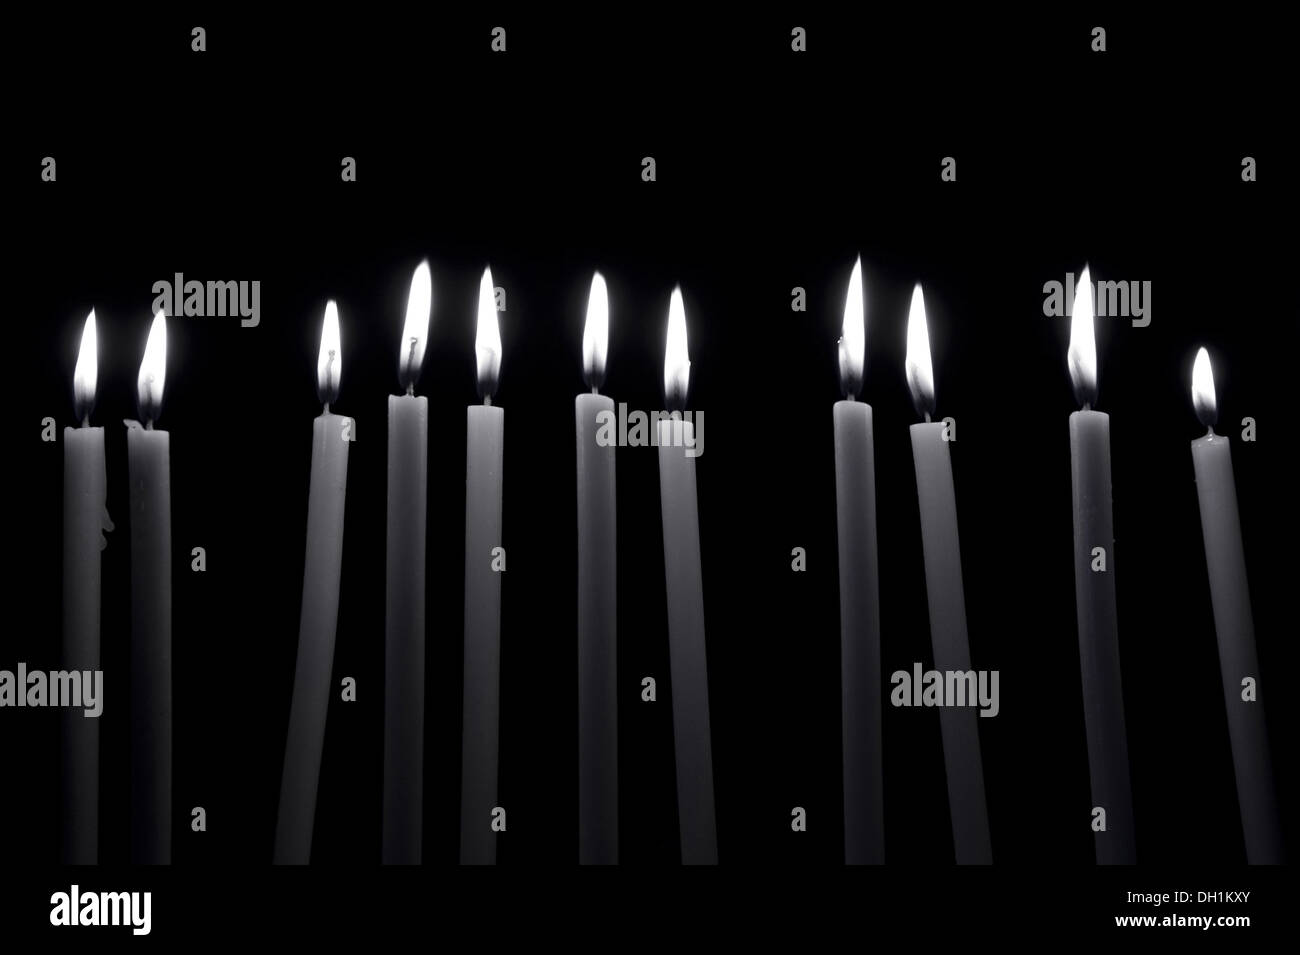 eleven candles burning flame - Stock Image